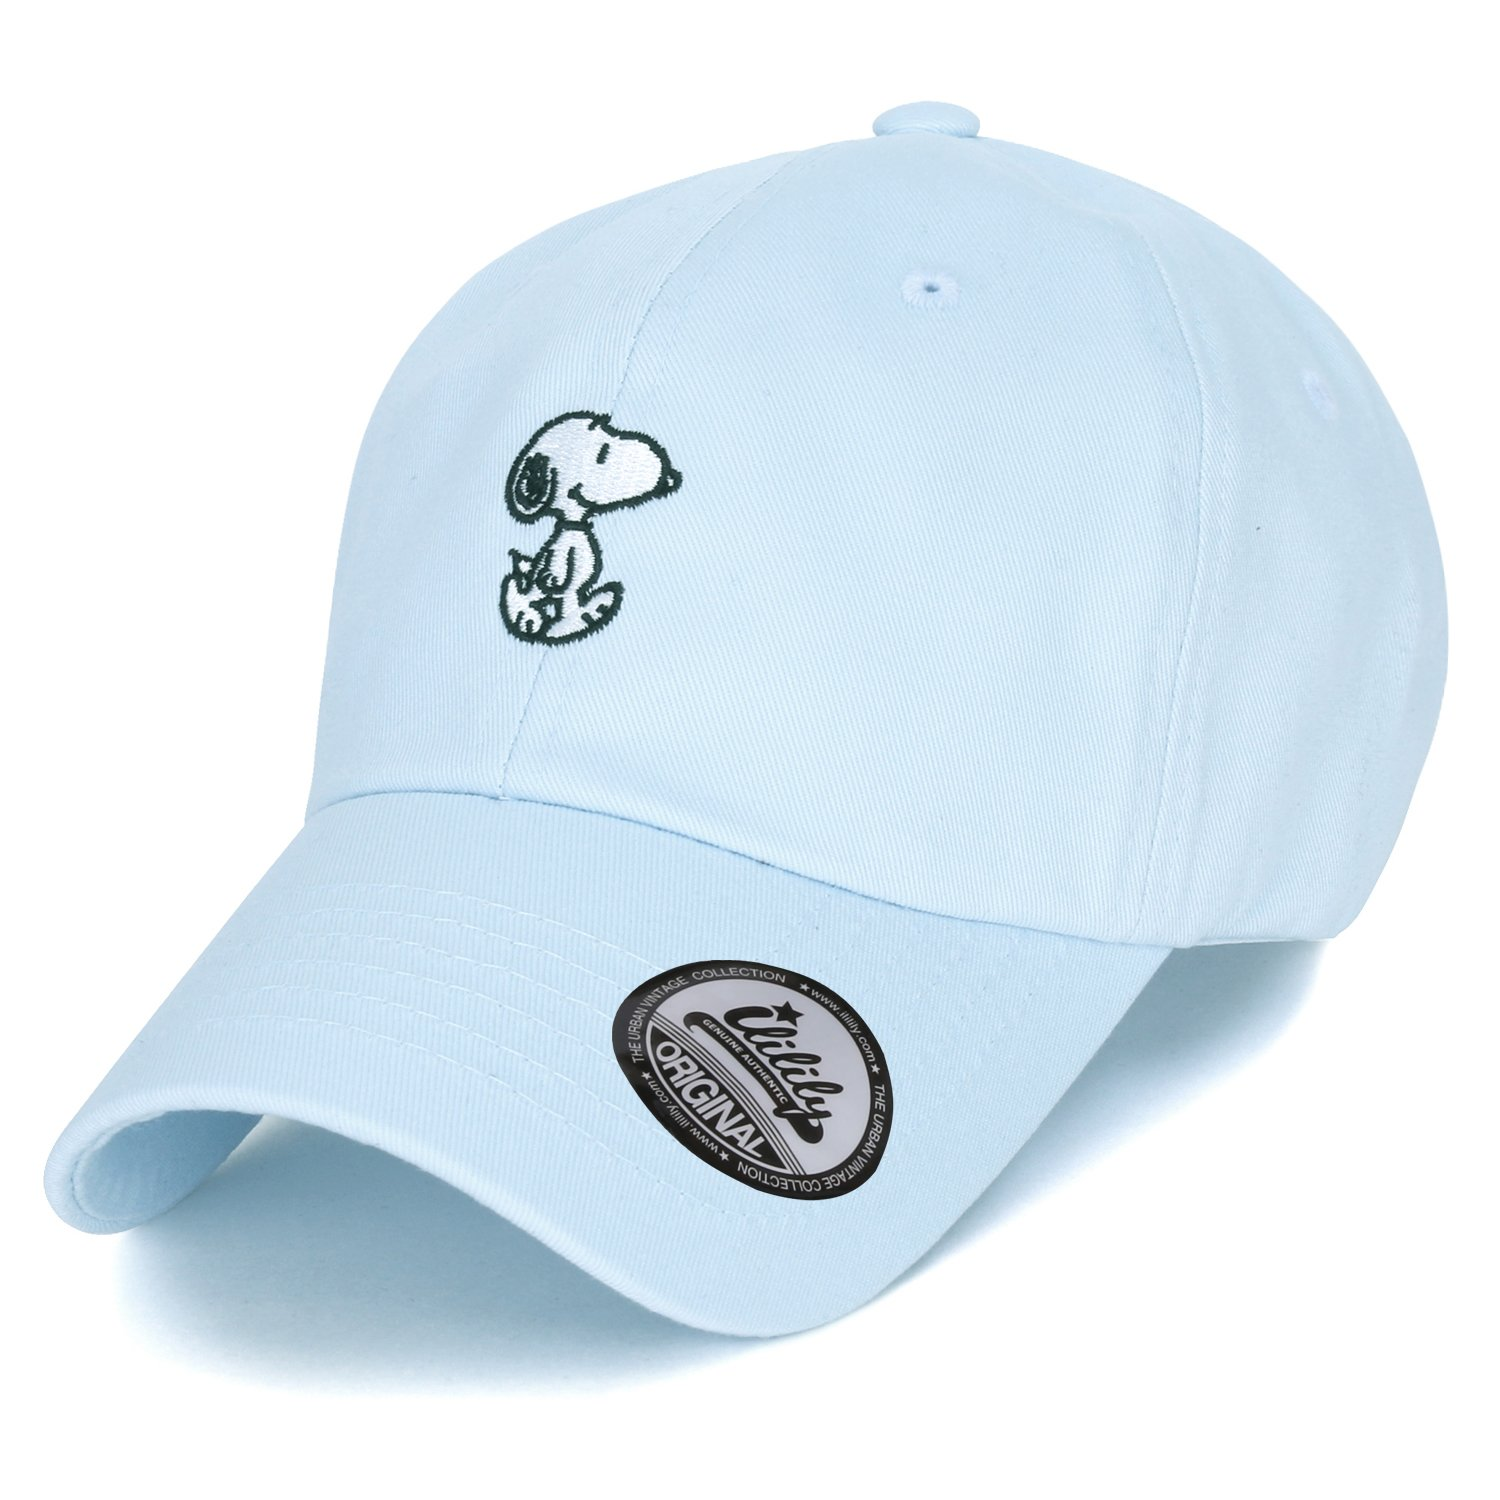 af7650fd6f8 peanuts cotton solid color cute snoopy embroidery curved casual hat  baseball cap (ballcap-1330-2)  Amazon.in  Clothing   Accessories